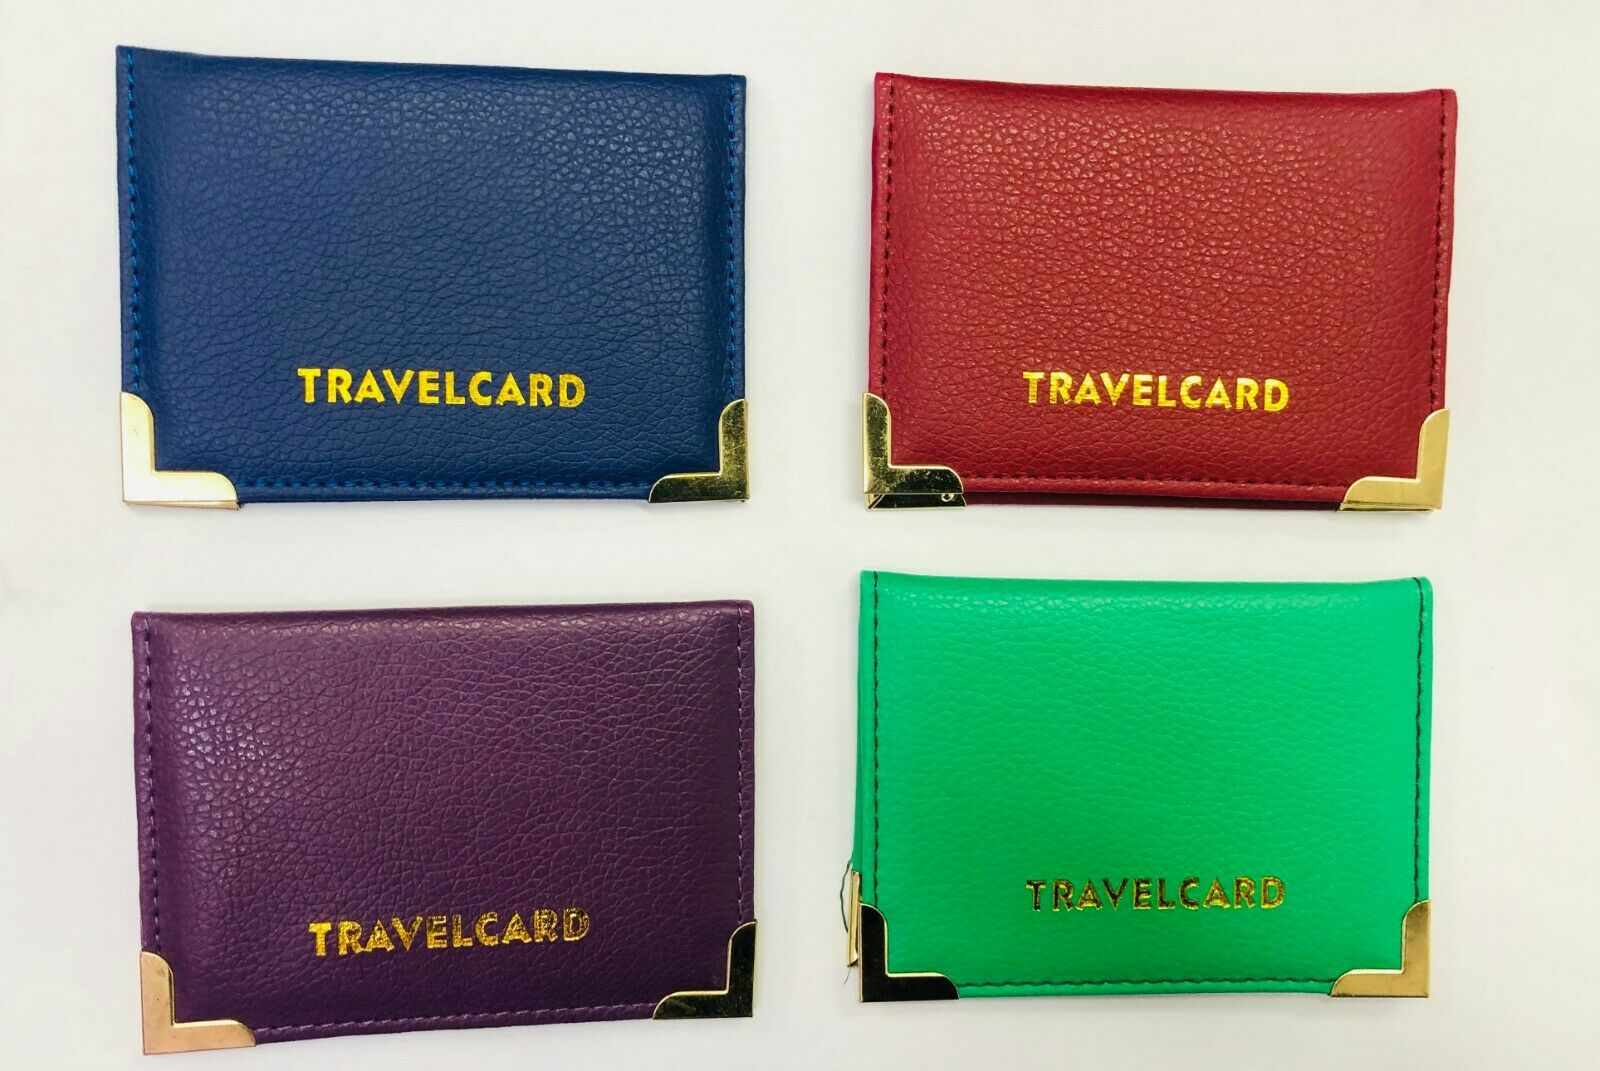 2 pcs Genuine Oyster Travel Card Bus Pass Rail Card Holder Wallet Cover Case UK